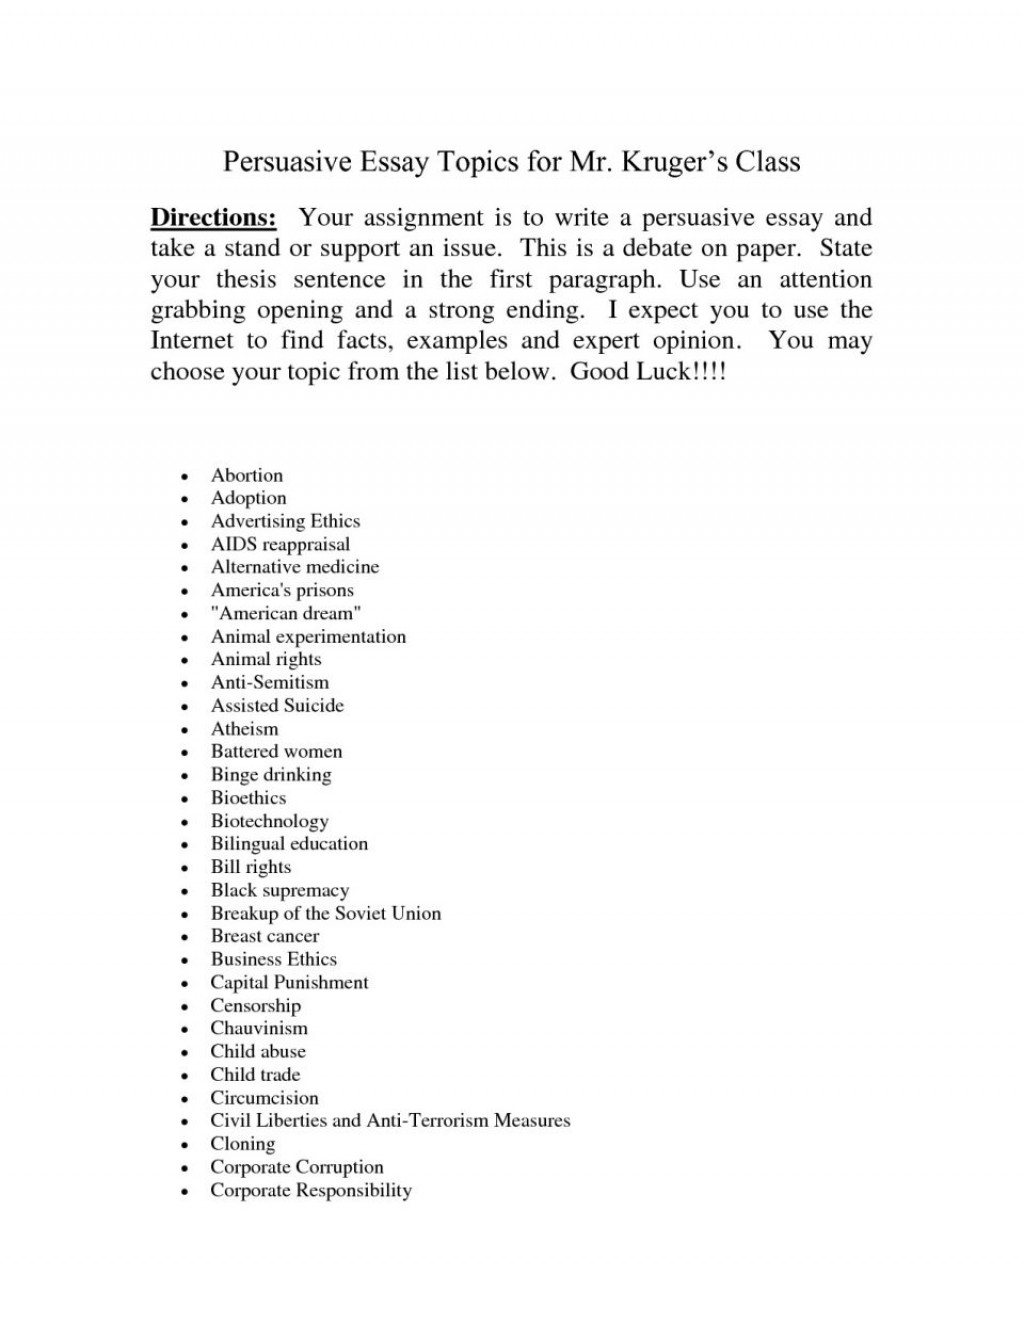 001 Topic For Essay Barca Fontanacountryinn Within Good Persuasive Narrative Topics To Write Abo Easy About Personal Descriptive Research Paper Informative Synthesis College Fantastic Computer Science Large